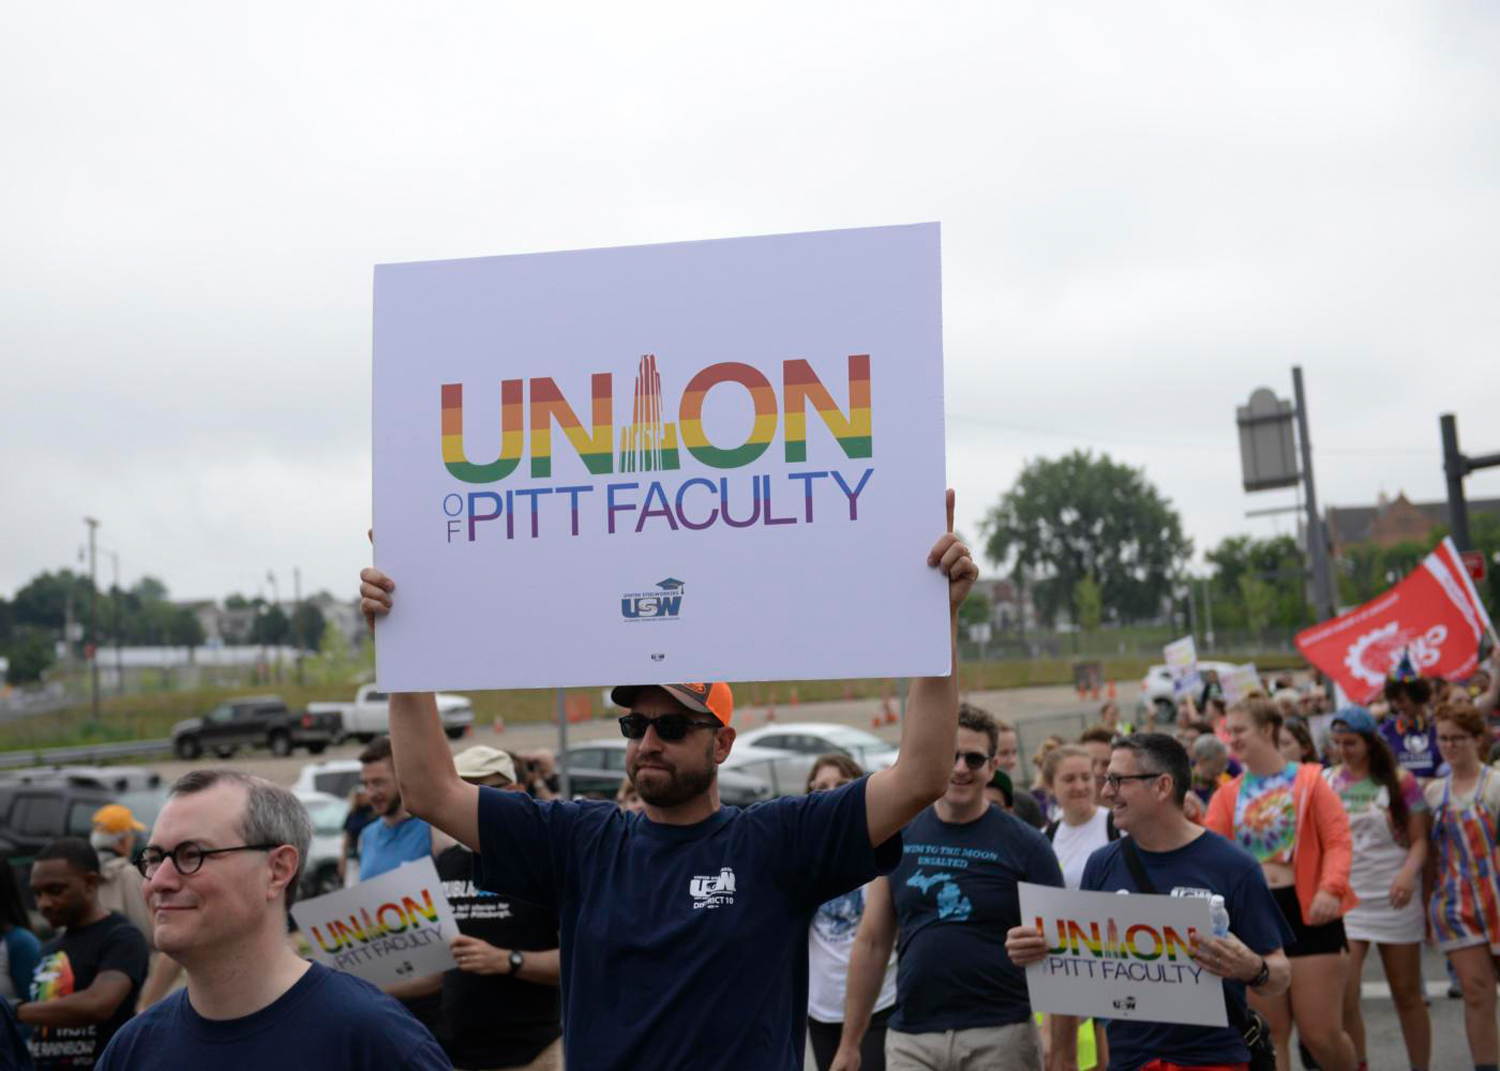 University of Pittsburgh faculty unionizers at the  People's Pride parade in June 2018.